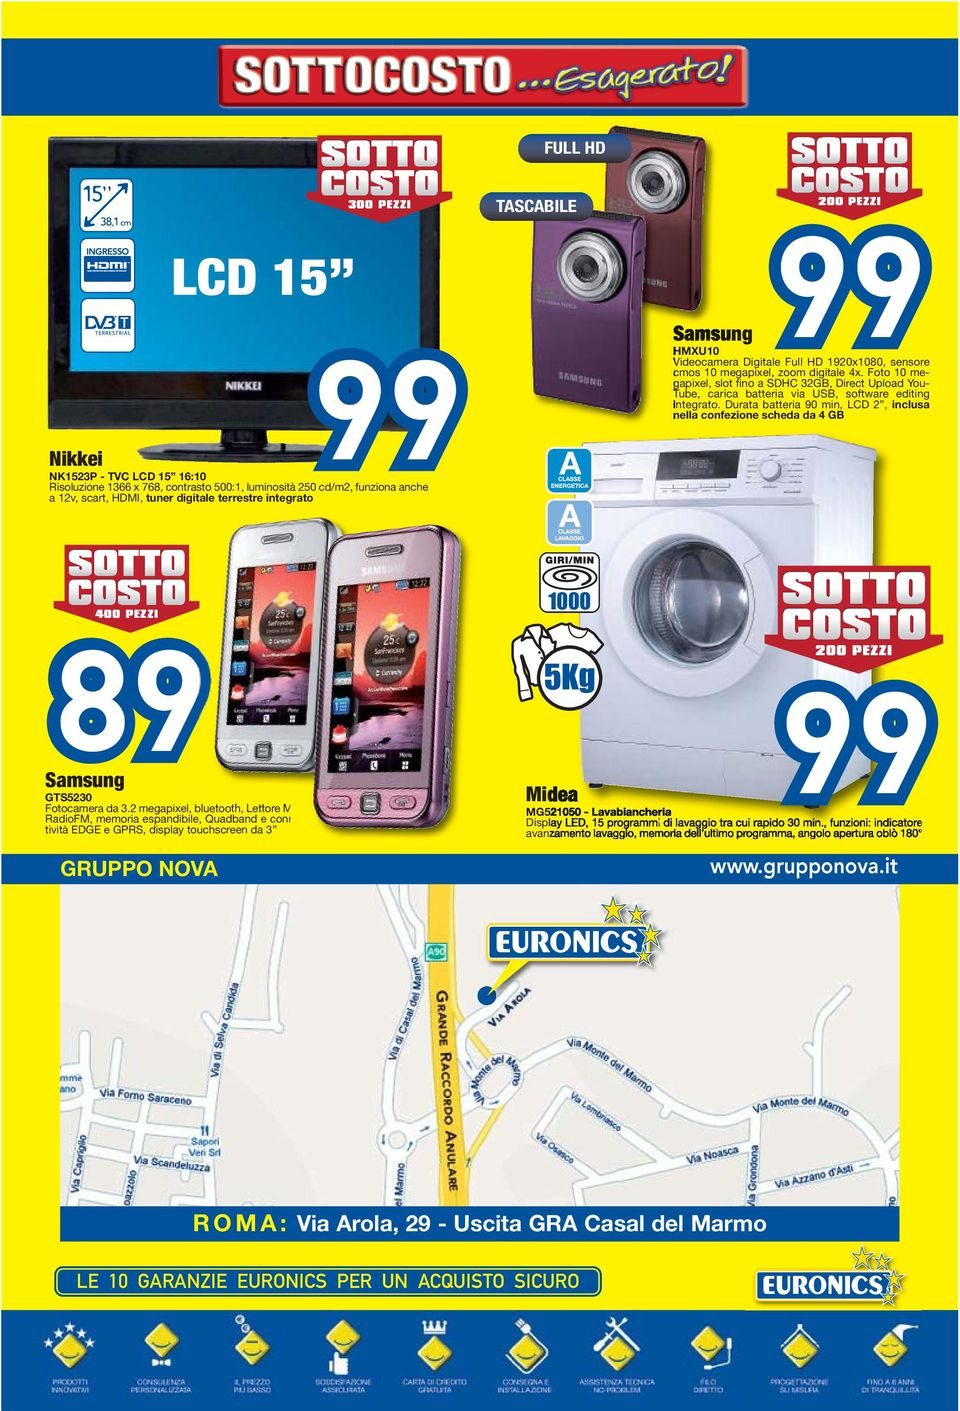 Foto 10 megapixel, slot fino a SDHC 32GB, Direct Upload You- Tube, carica batteria via USB, software editing integrato.